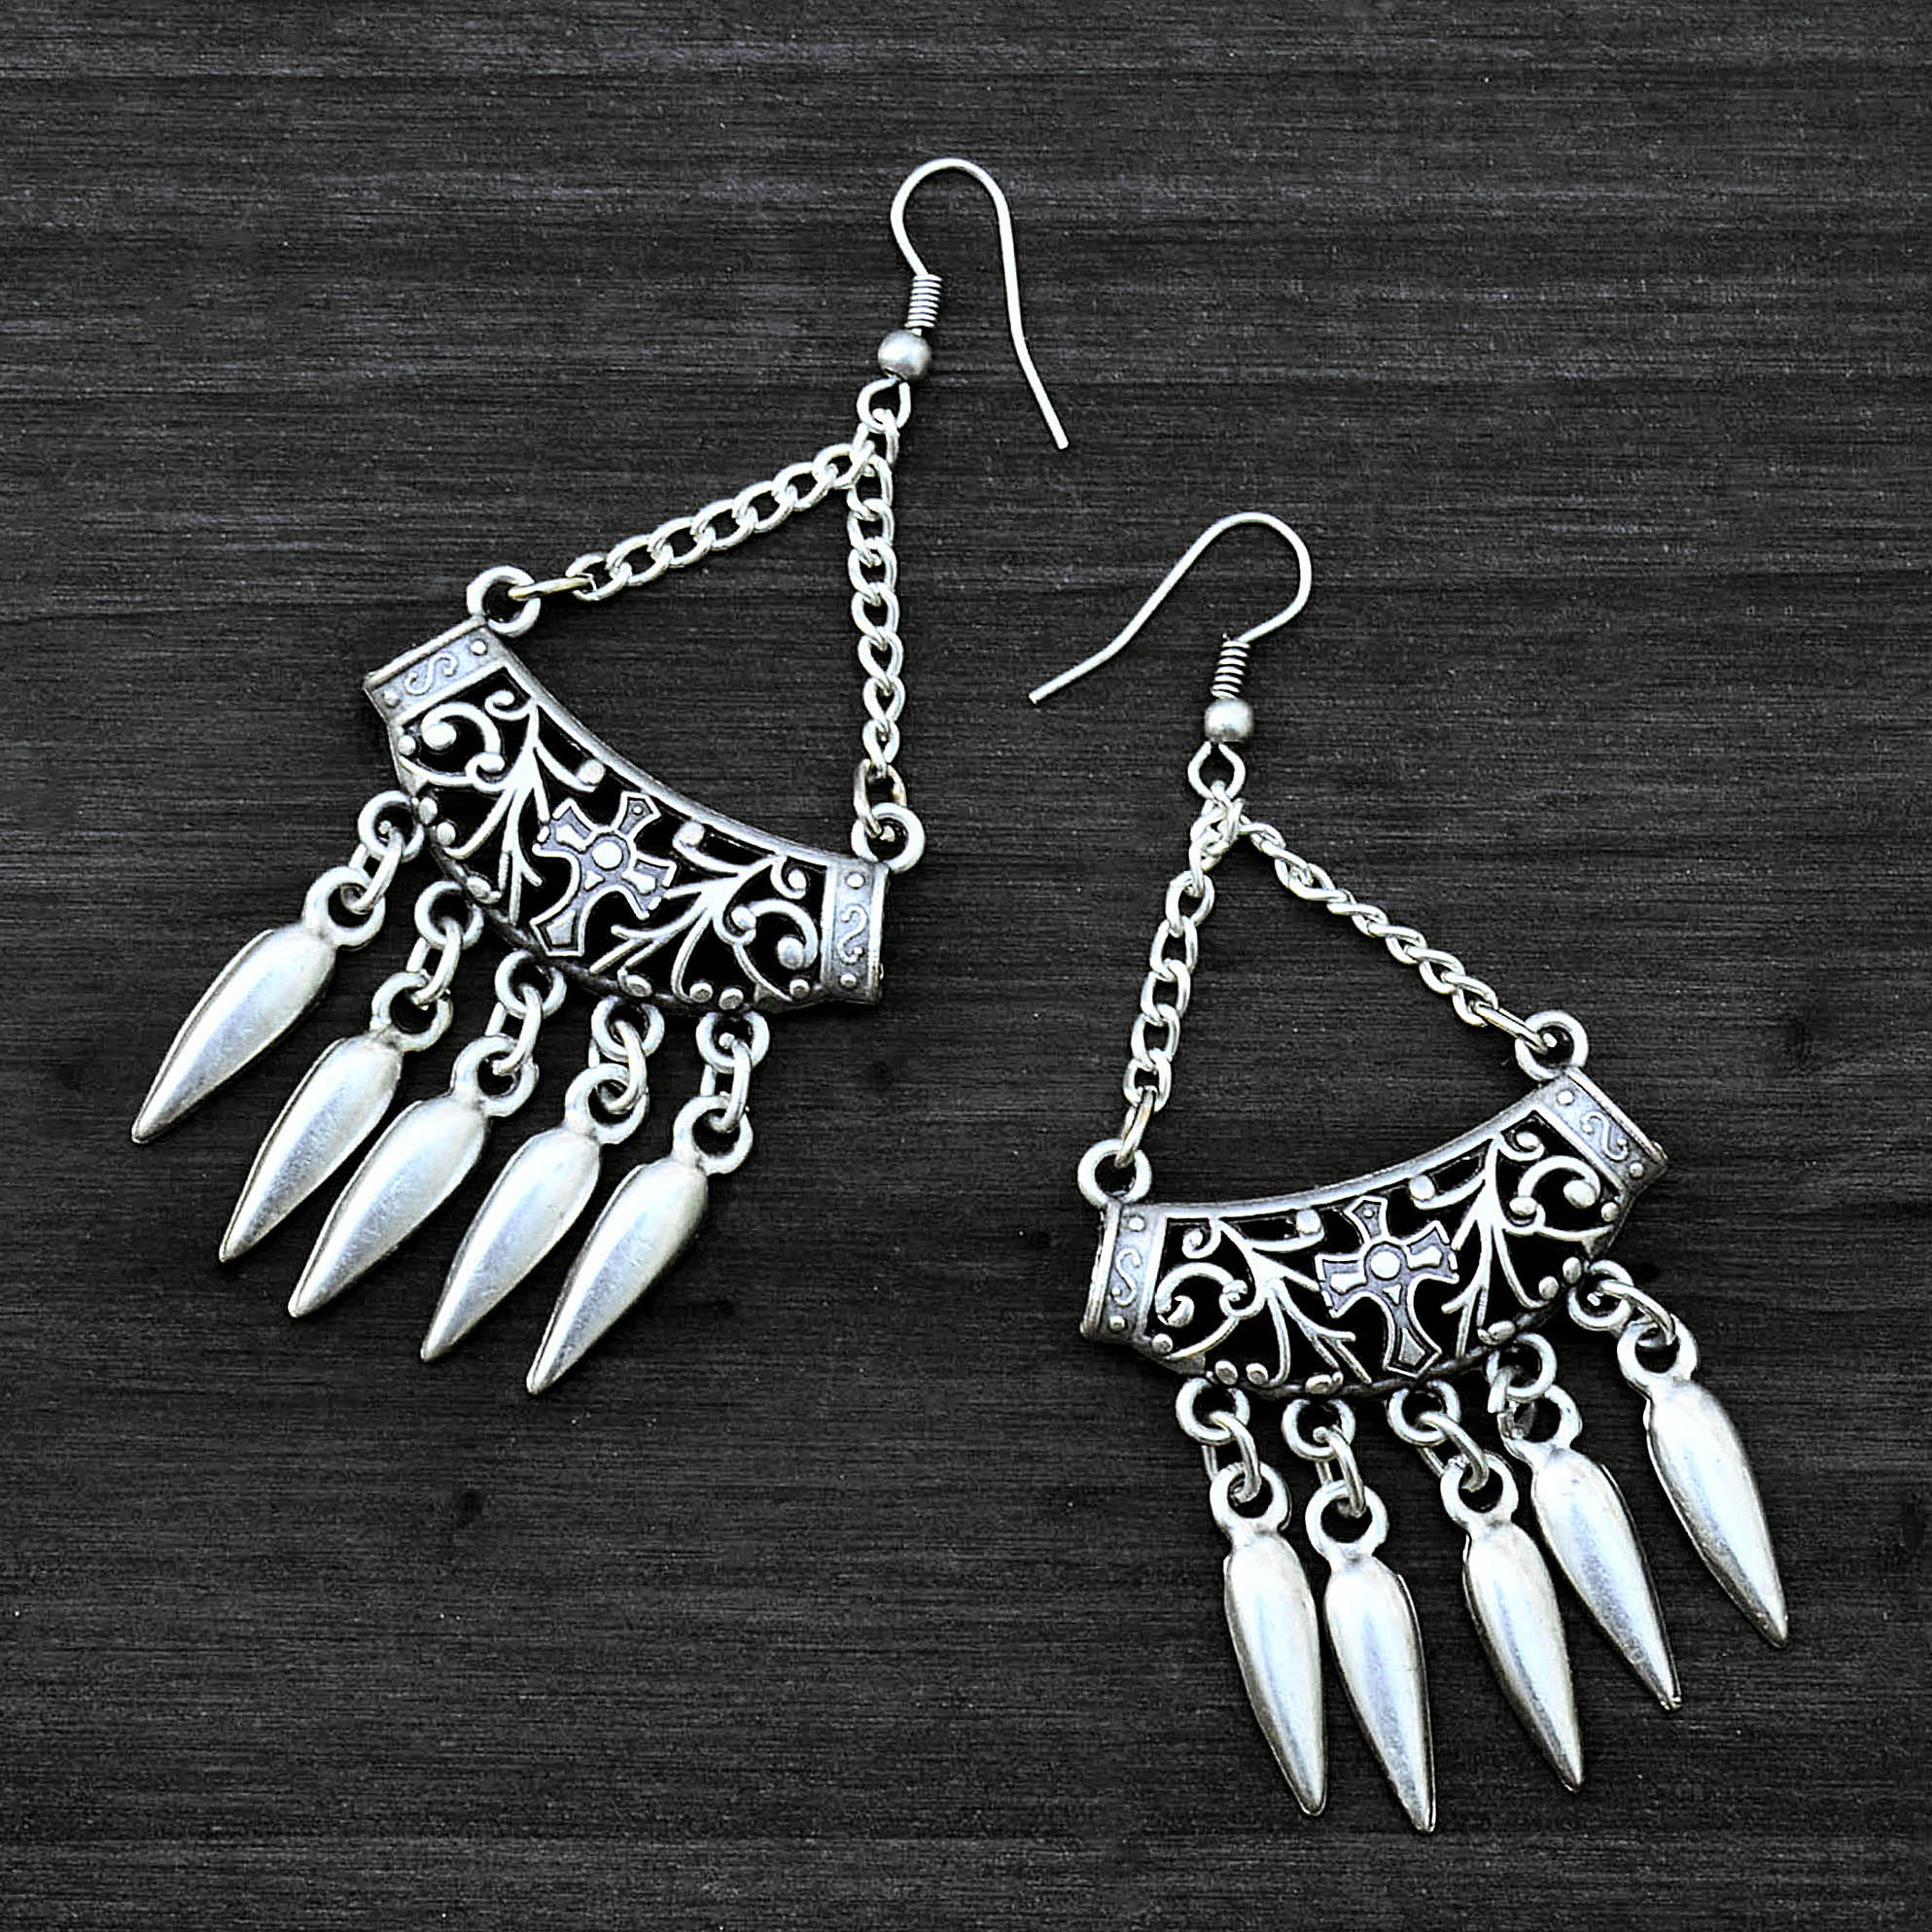 Gothic hanging earrings